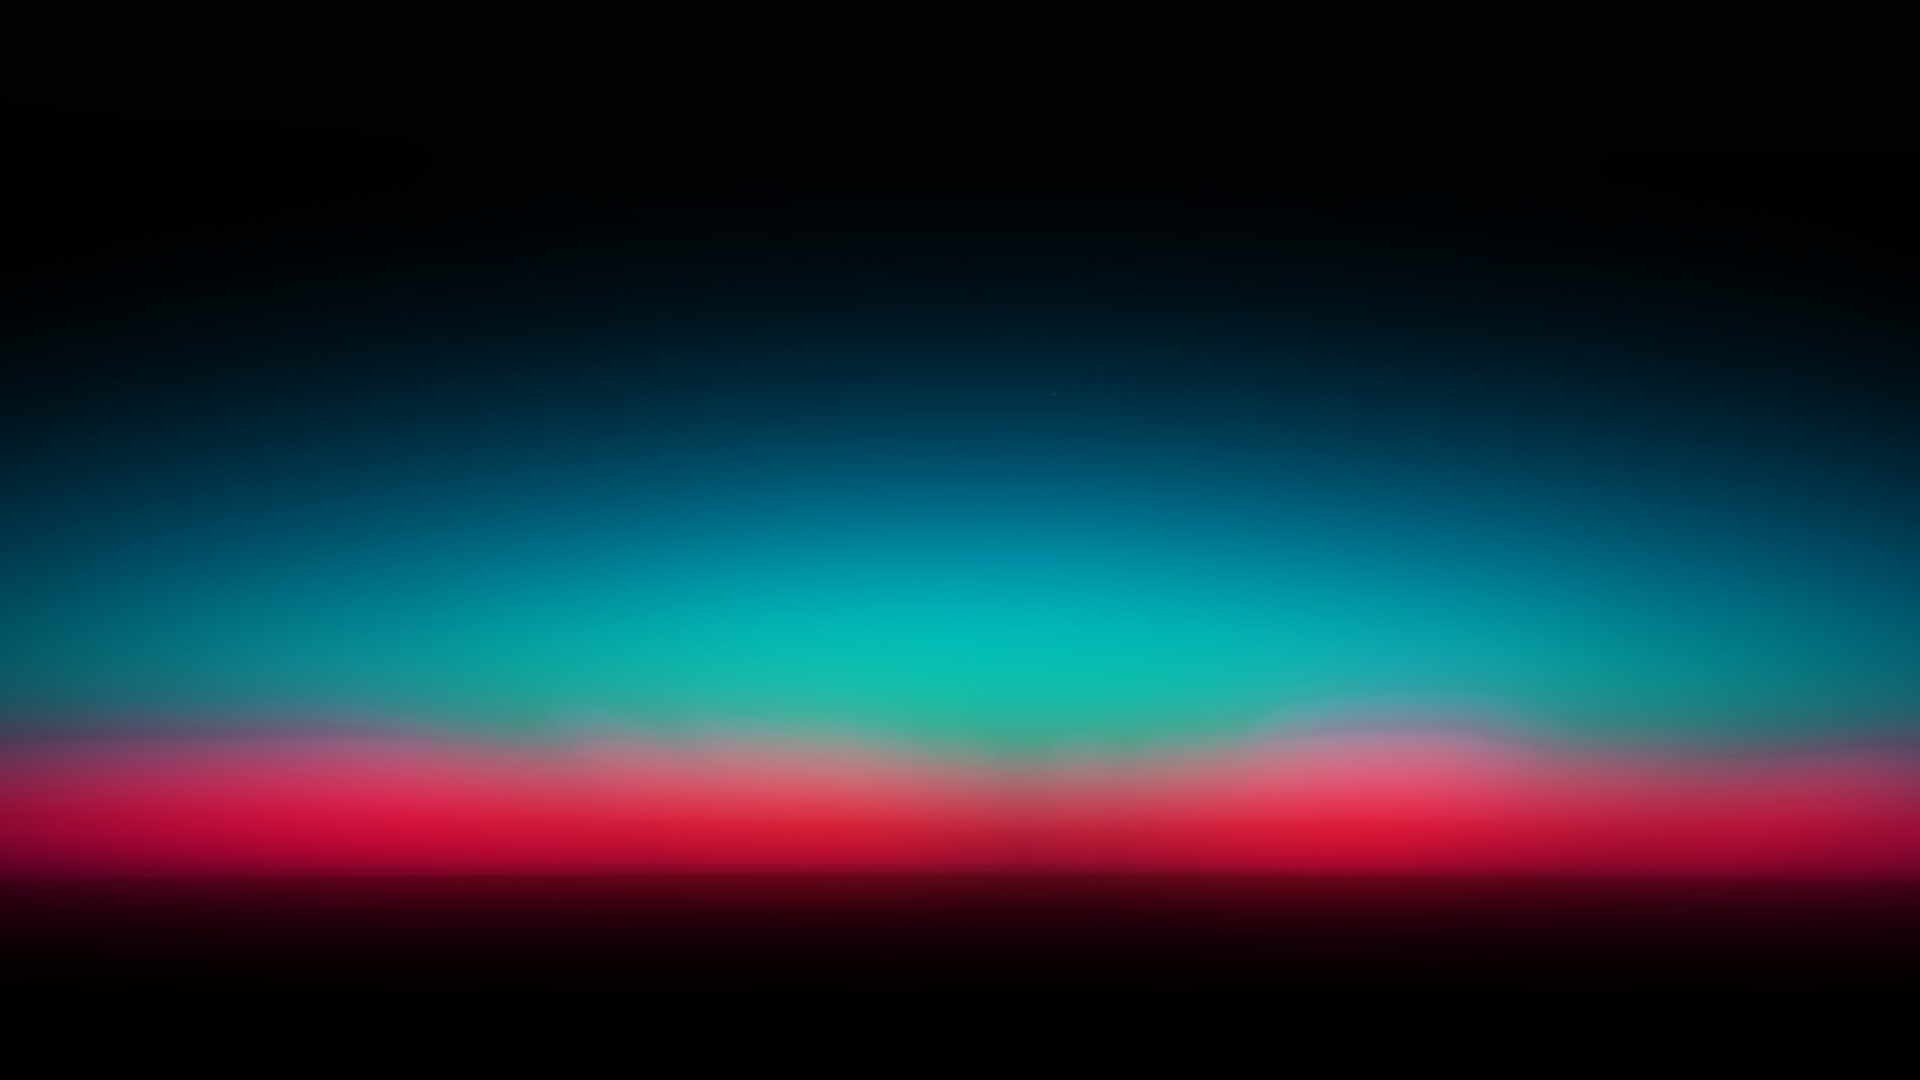 Ios 7 Hd Wallpaper Download Wallpaper For Desktop Laptop Sk36 Sunset Dark Red Green